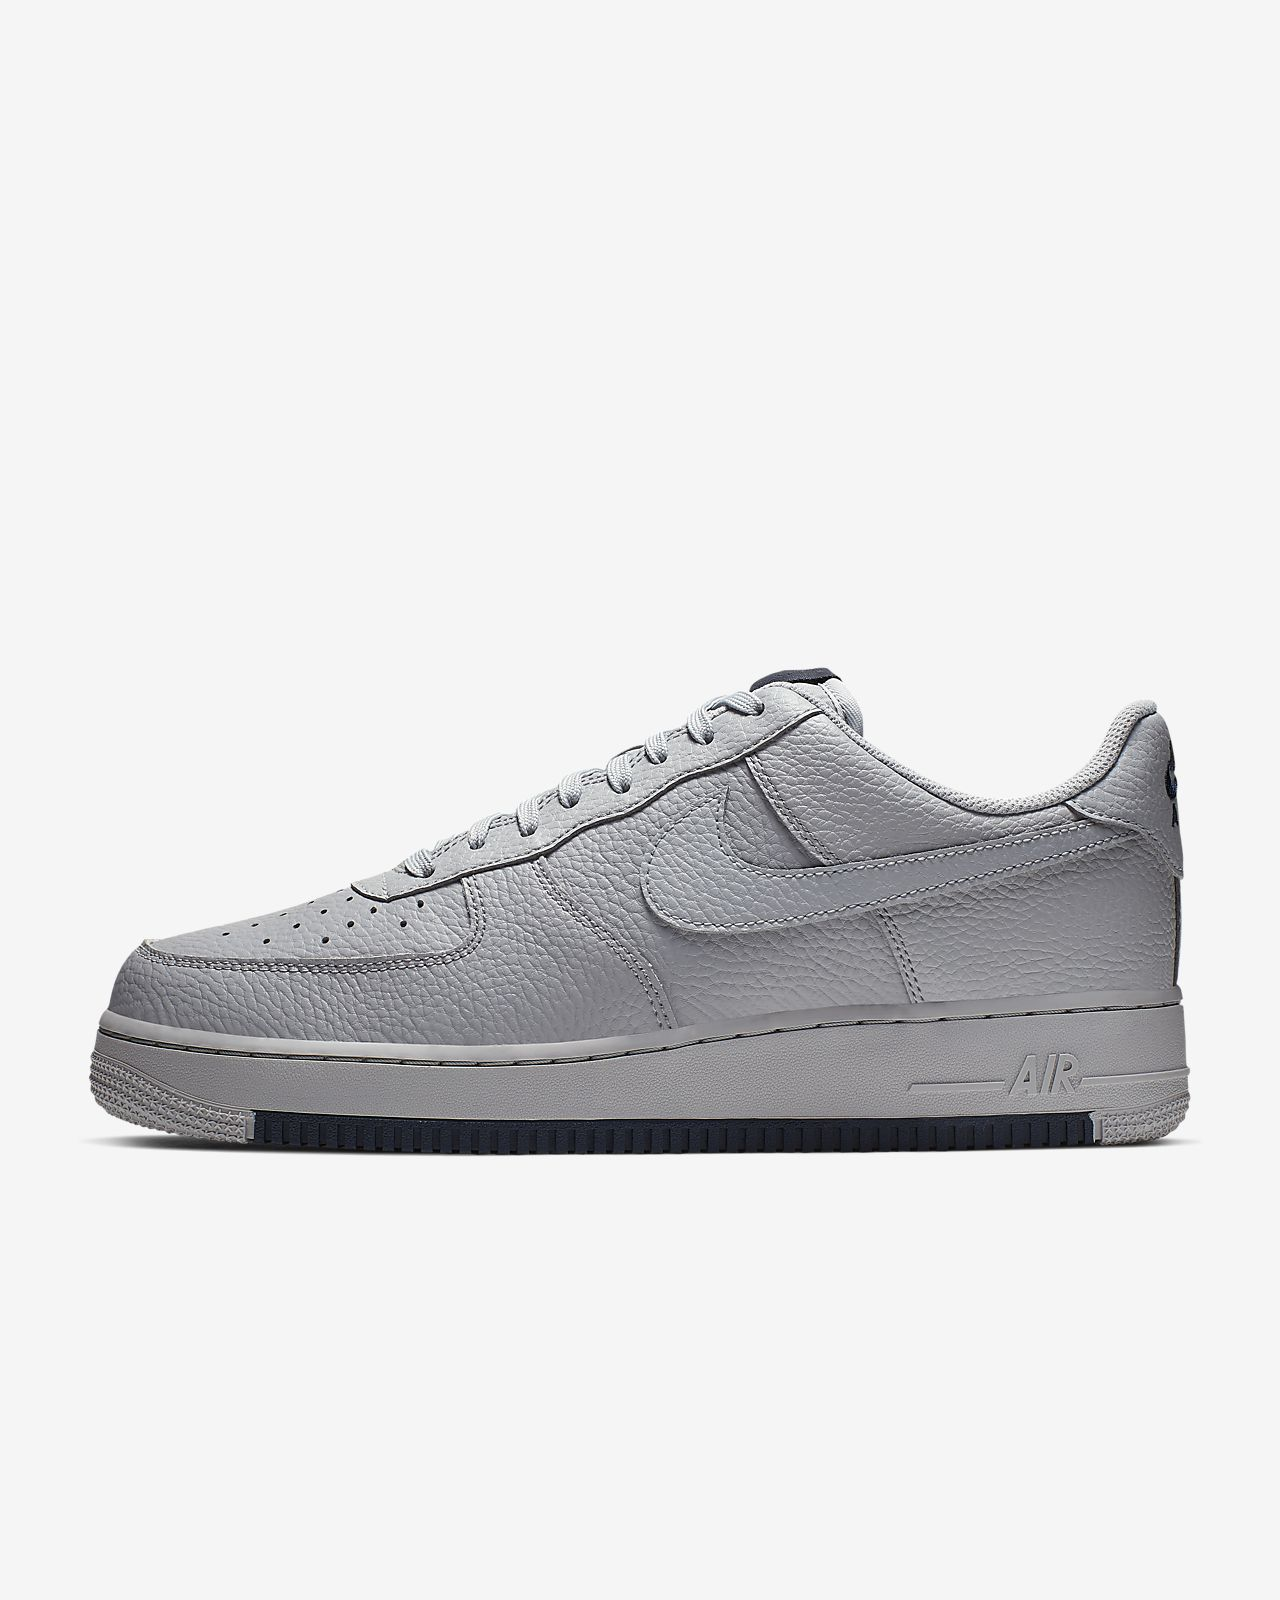 Nike Air Force 1 '07 1 Men's Shoe